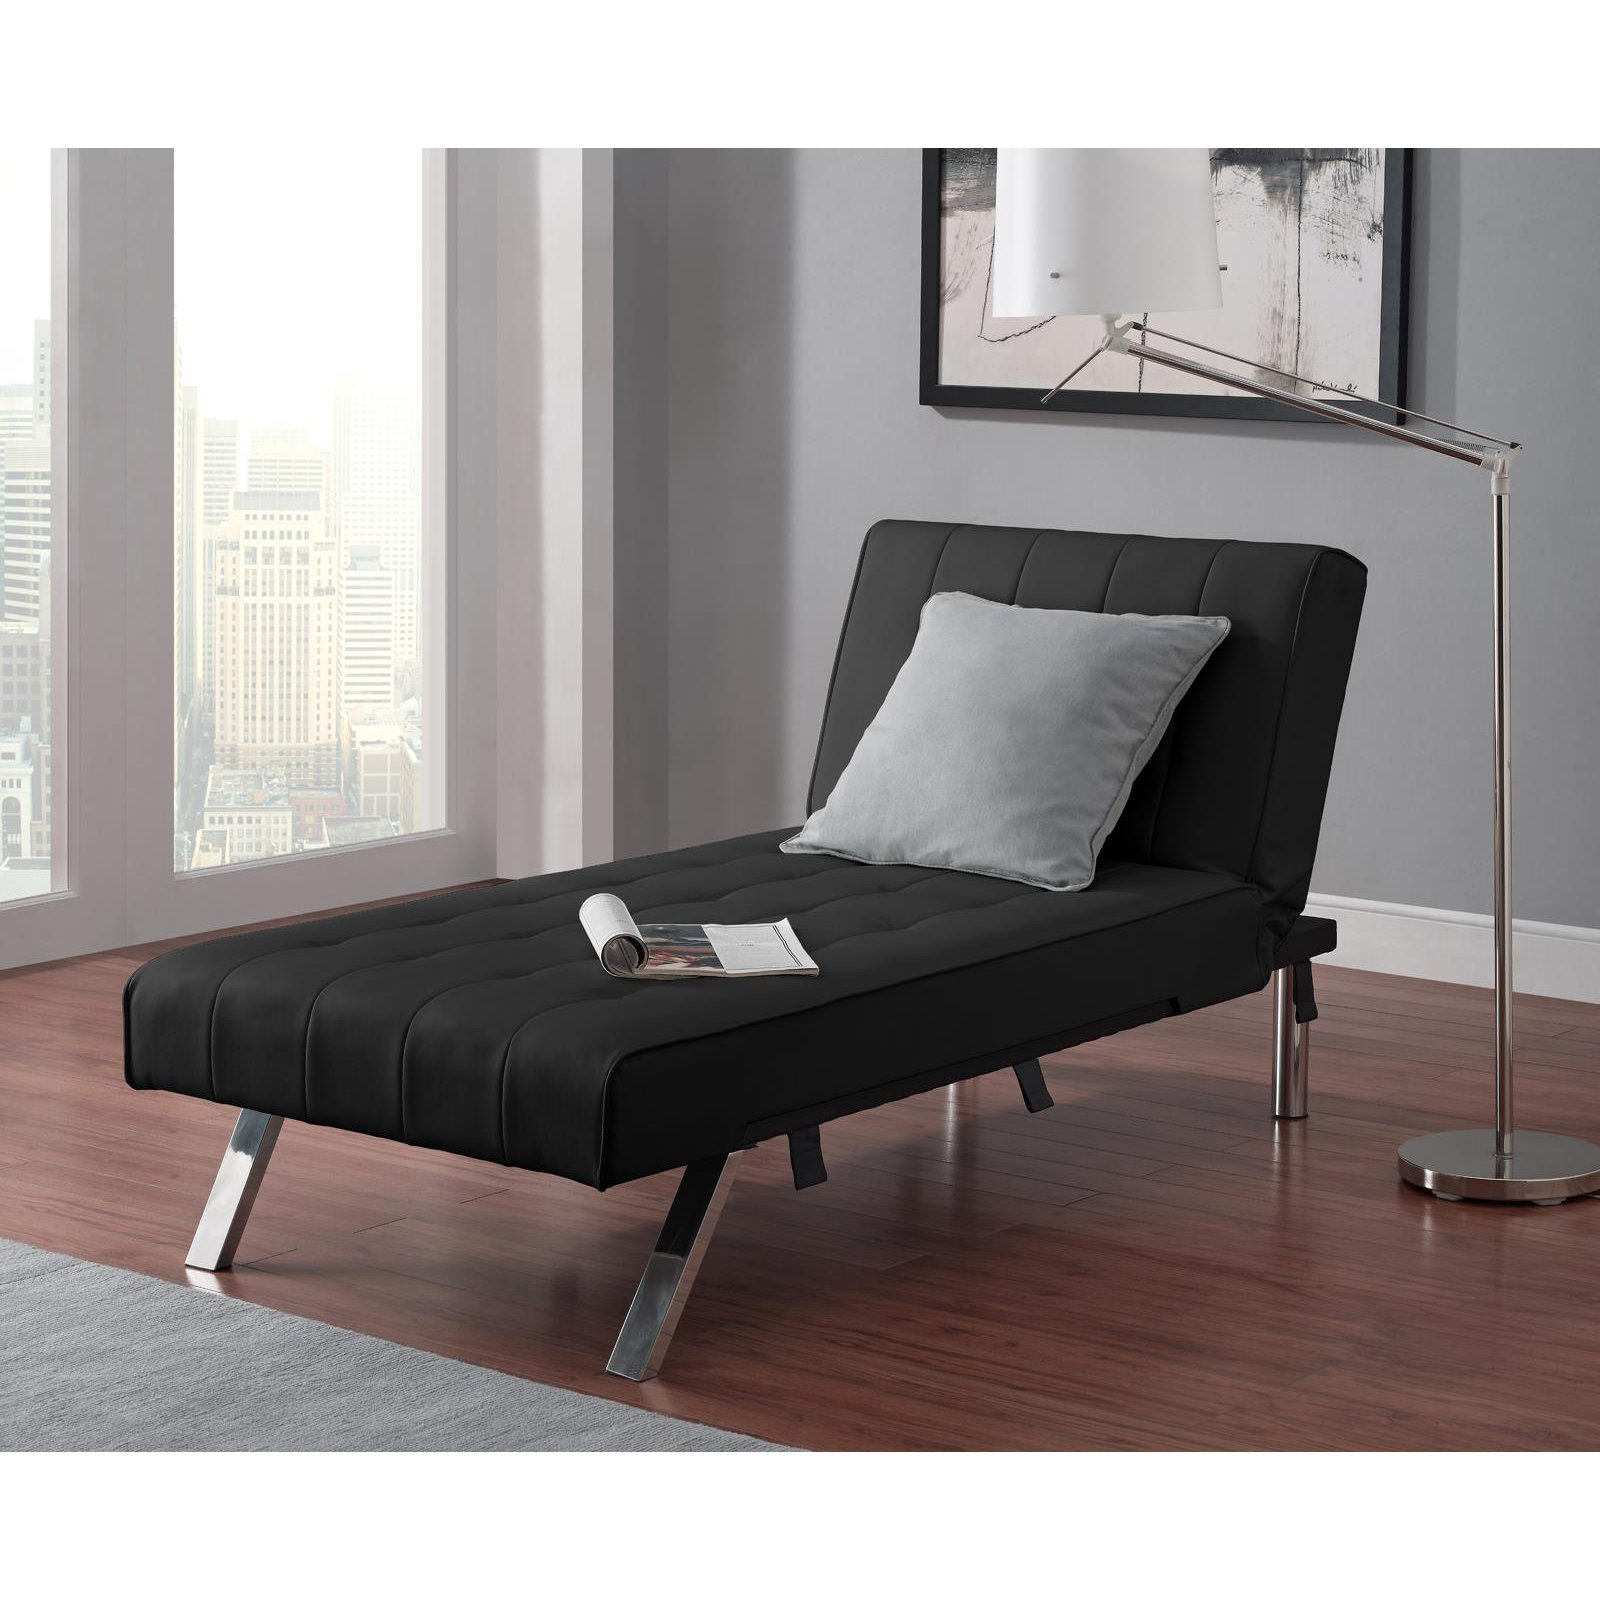 emily futon chaise lounger multiple colors  walmartcom -